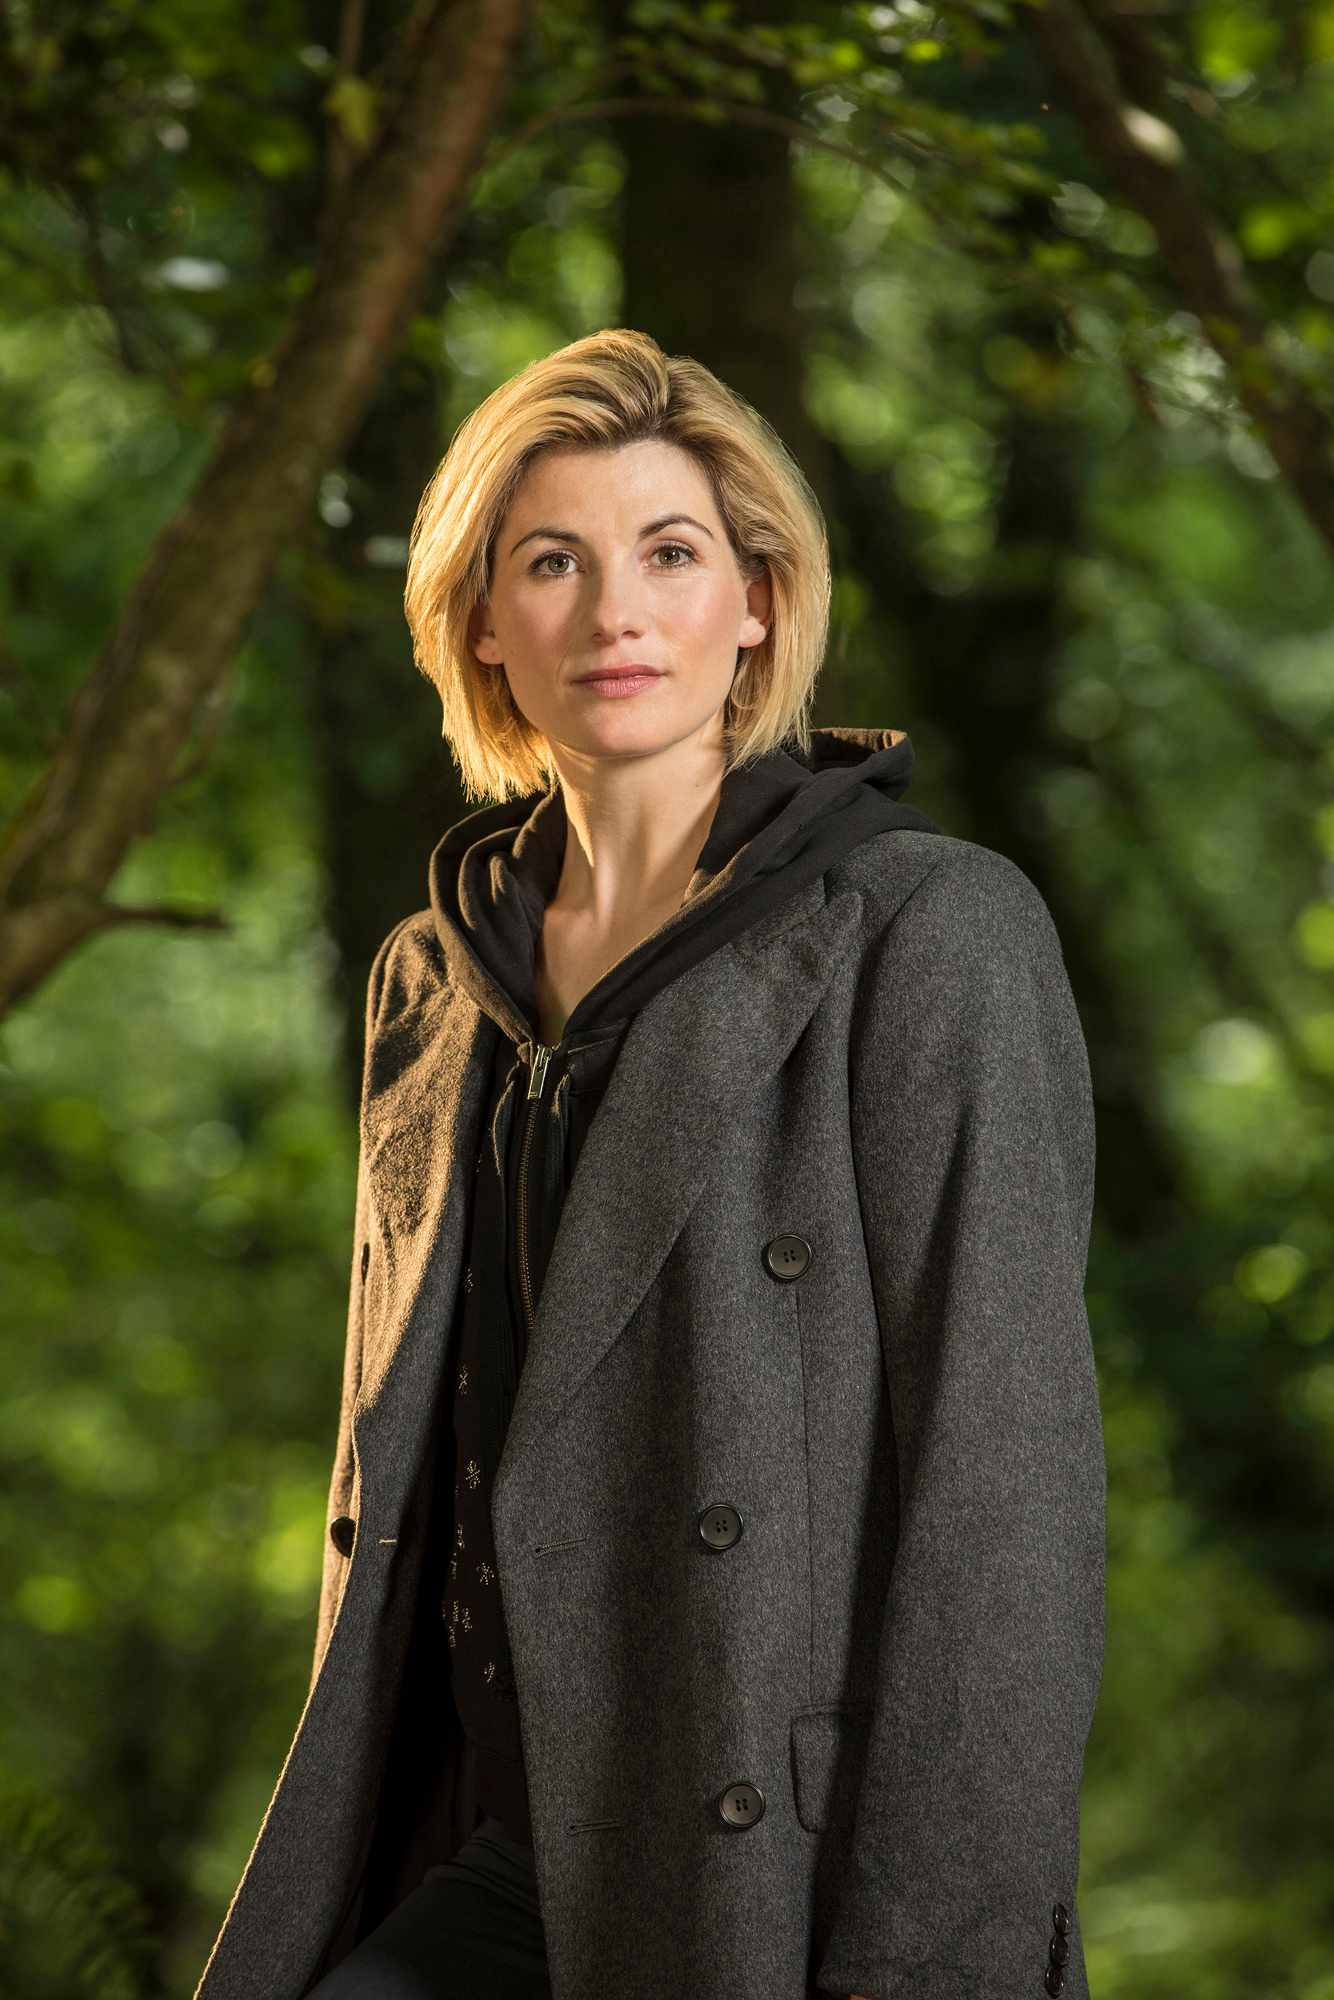 Jodie Whittaker in Doctor Who